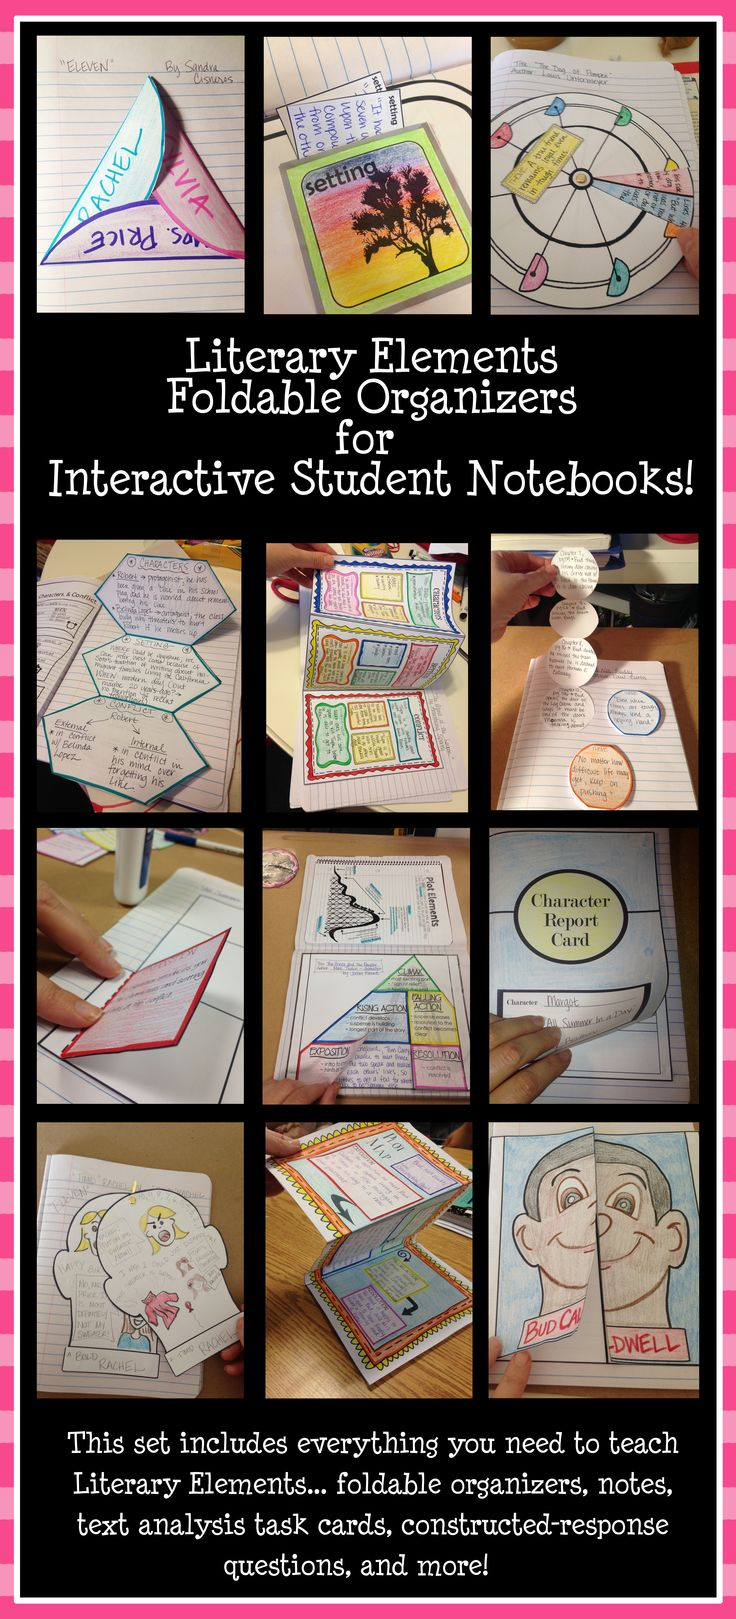 Collection of foldable organizers for interactive student notebooks!